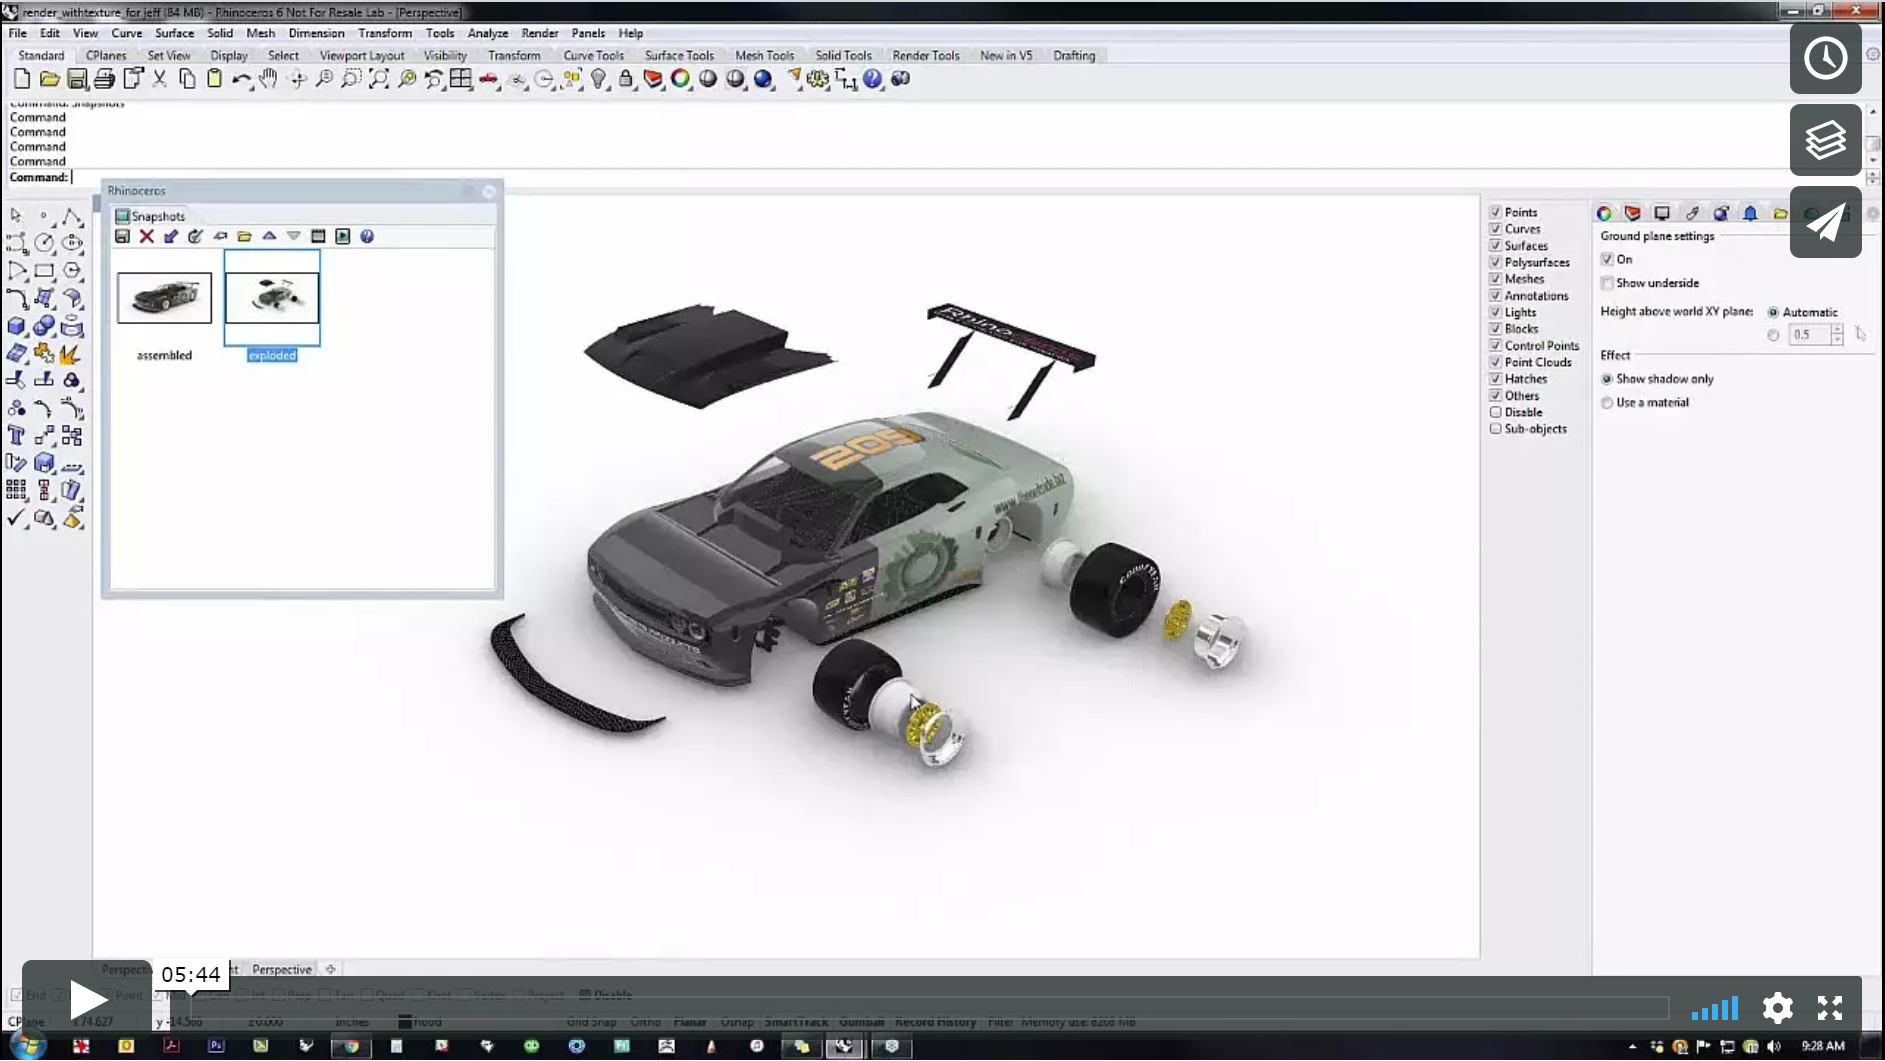 Use Snapshots to assemble the model